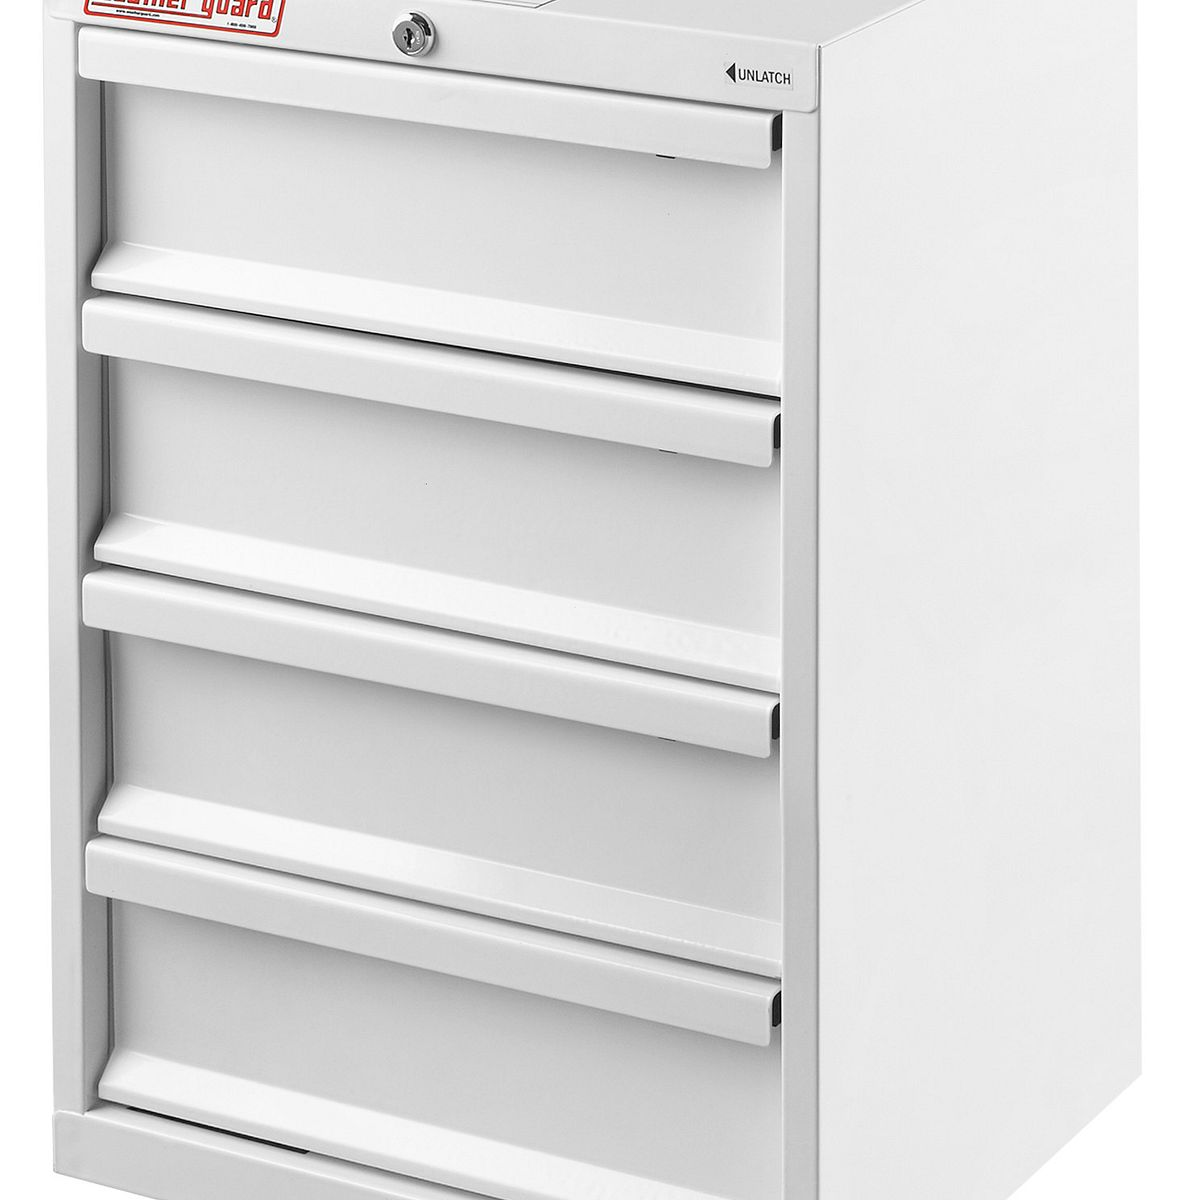 Cabinet And Drawer Accessories Create A Custom Storage Solution That  Securely Organizes Items That Need To Be Located Quickly And Easily.